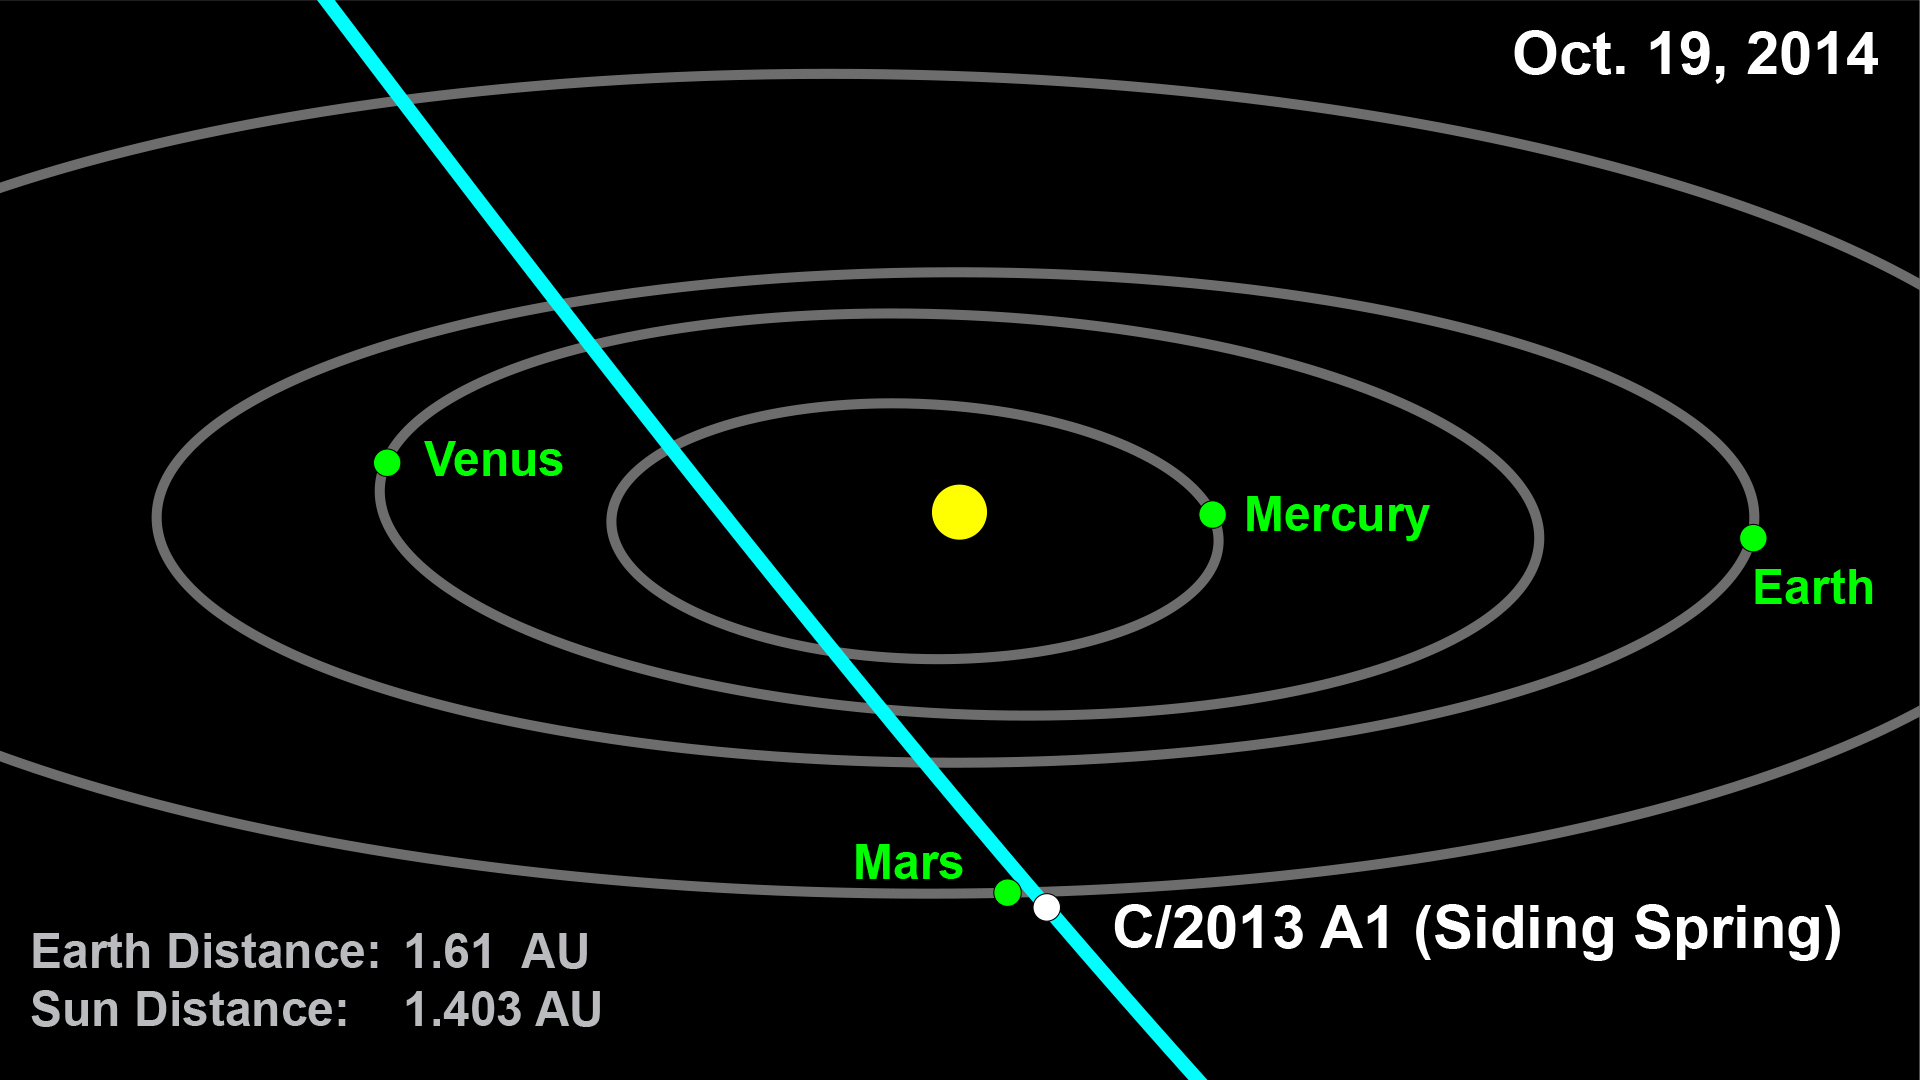 Comet C/2013 A1 Siding Spring Map